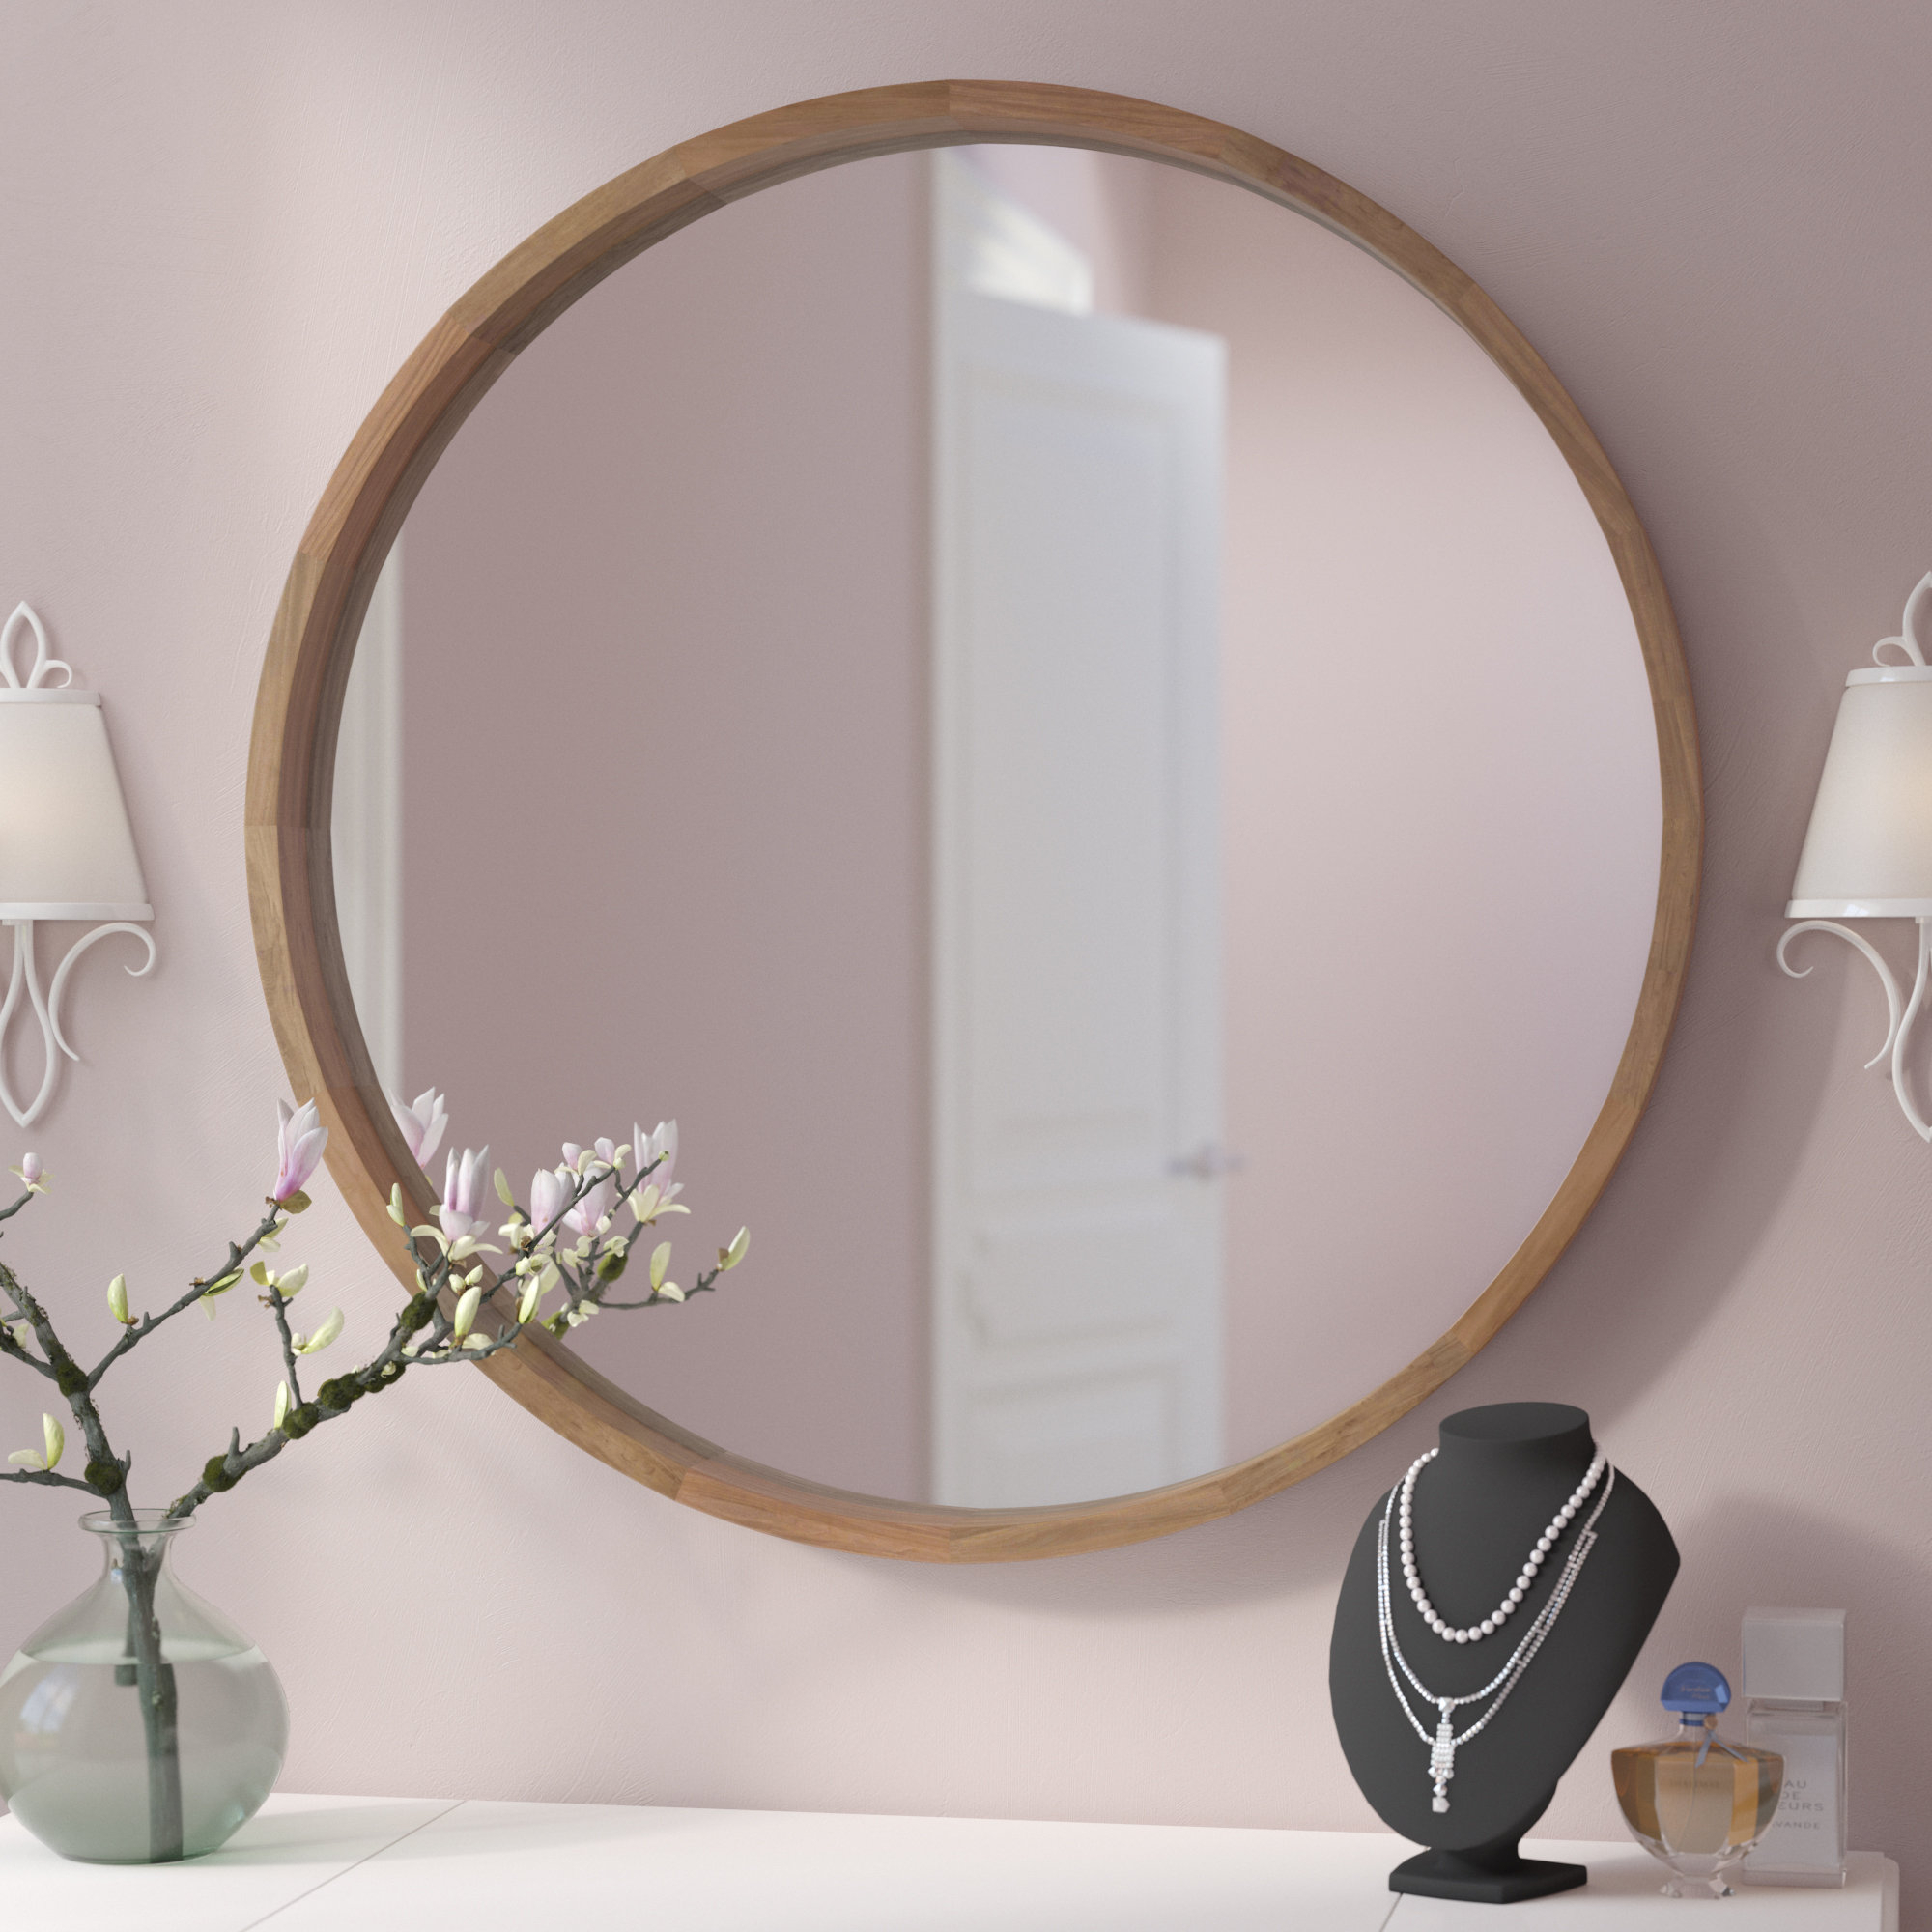 Loftis Modern & Contemporary Accent Wall Mirror Pertaining To Matthias Round Accent Mirrors (View 10 of 20)